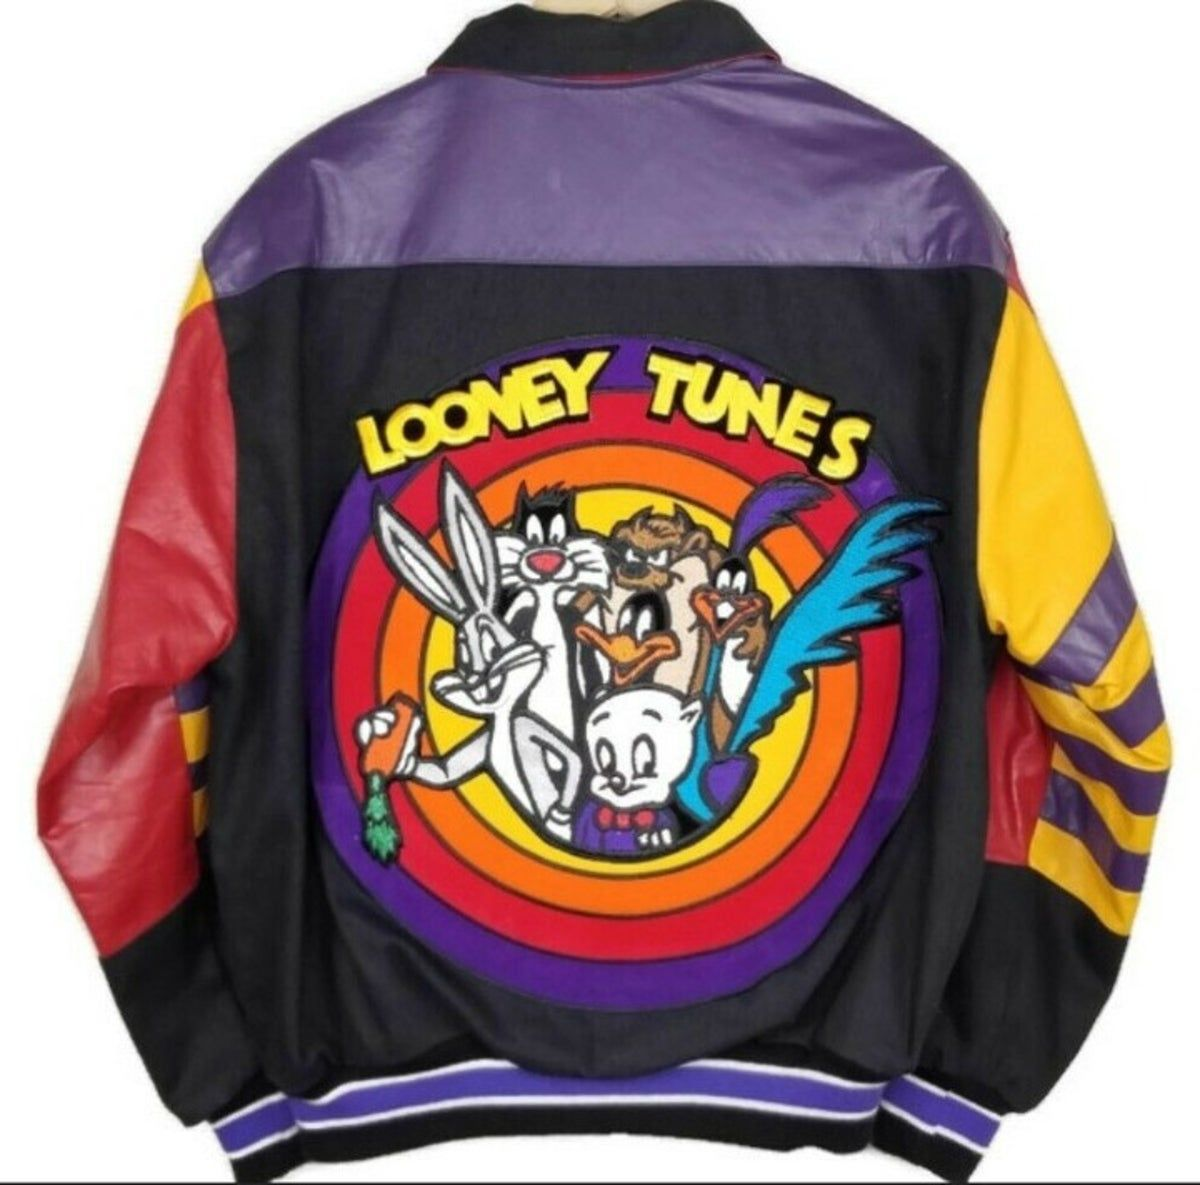 Looney Tunes Vintage 1990s Jacket Small In 2021 Vintage Jacket Outfit Hoody Outfits Cute Sweatpants Outfit [ 1185 x 1200 Pixel ]